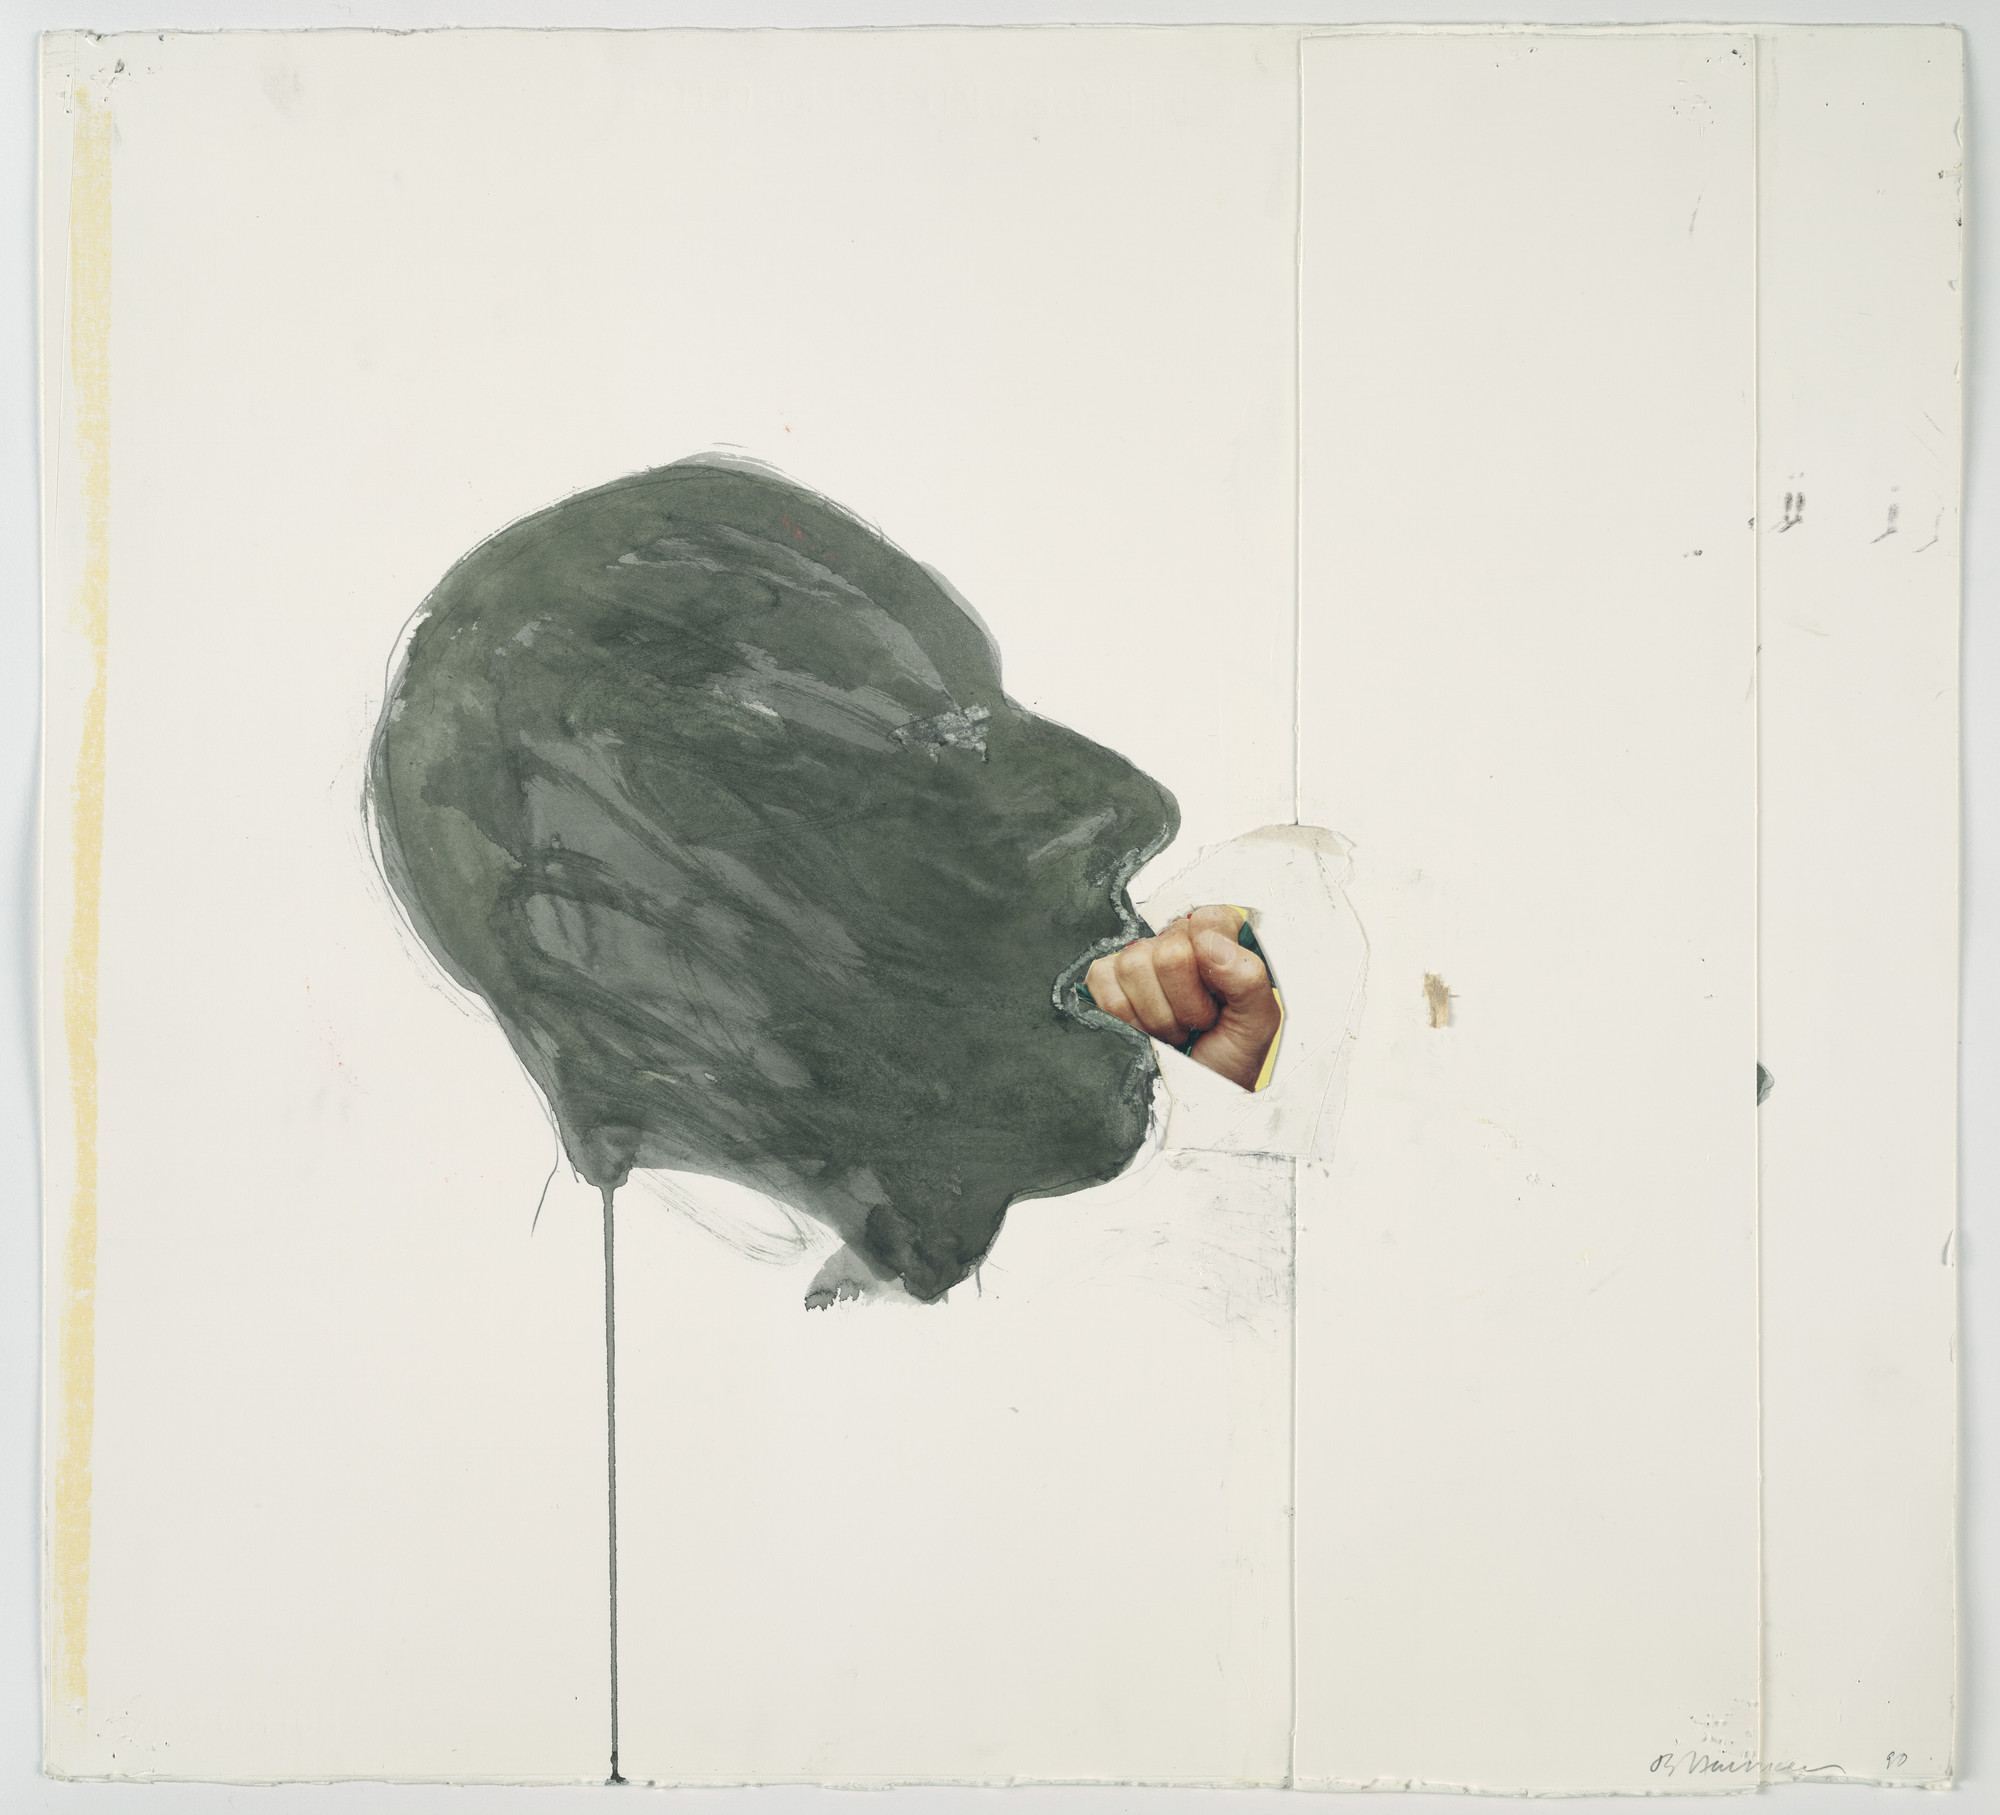 Bruce Nauman. Fist in Mouth. 1990